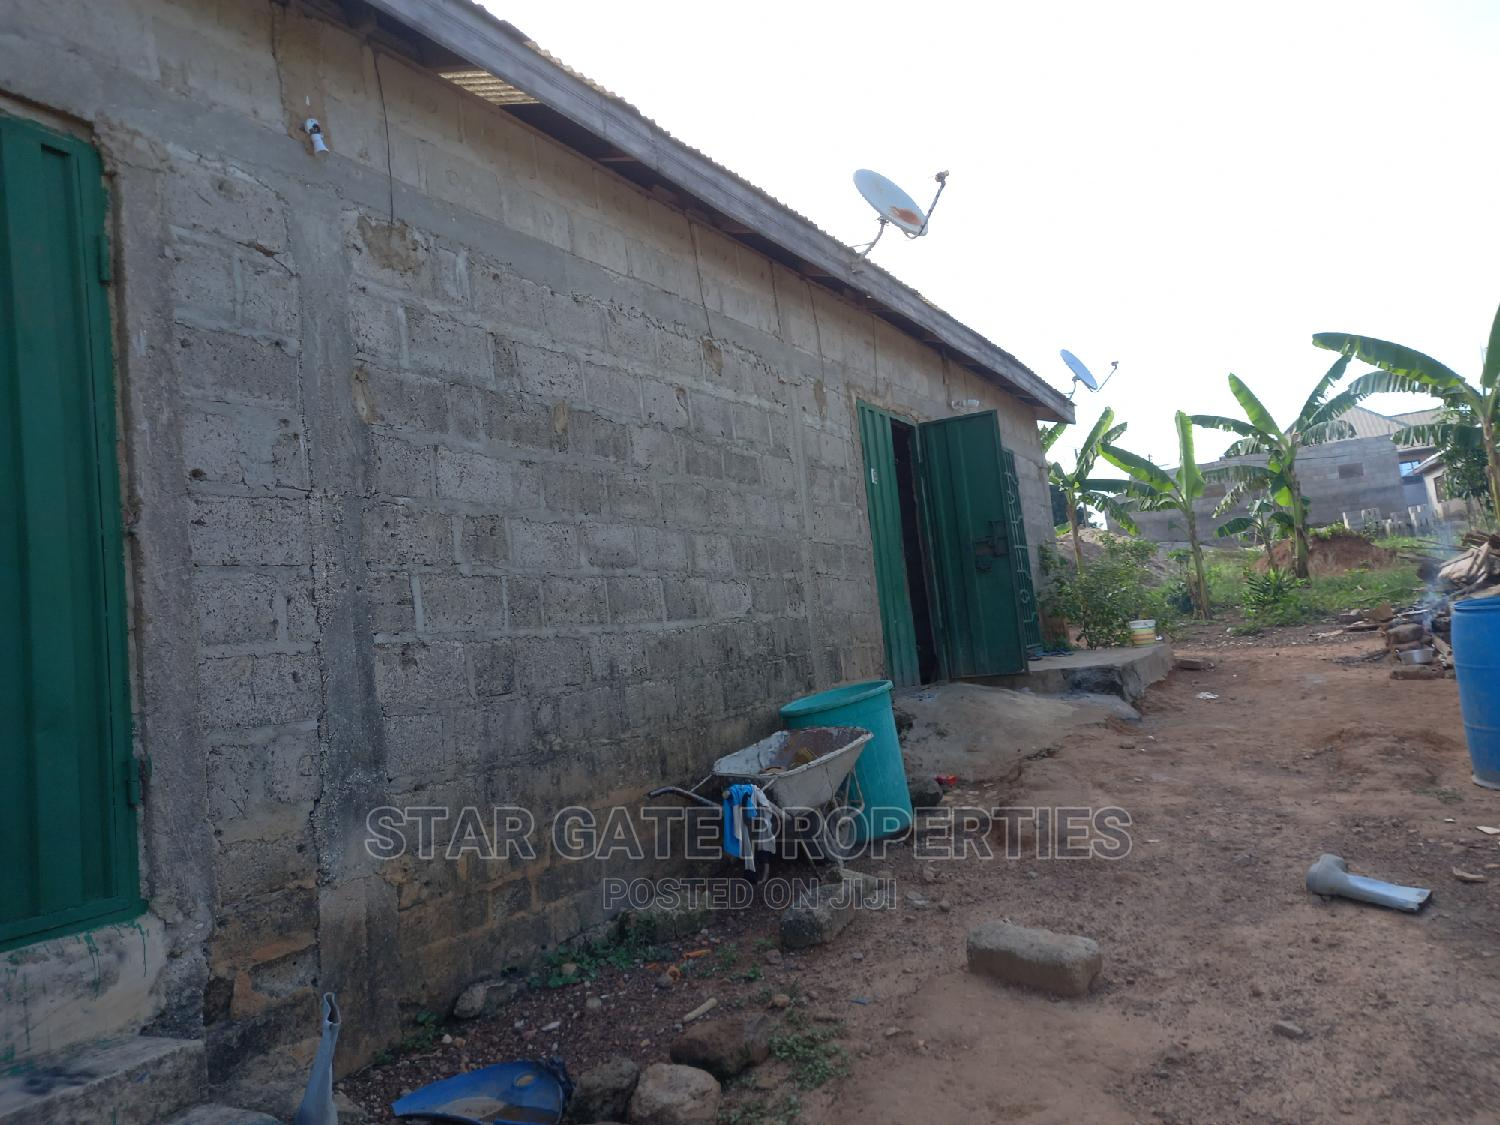 2bdrm House in Star Gate Properties, Kumasi Metropolitan for Sale   Houses & Apartments For Sale for sale in Kumasi Metropolitan, Ashanti, Ghana